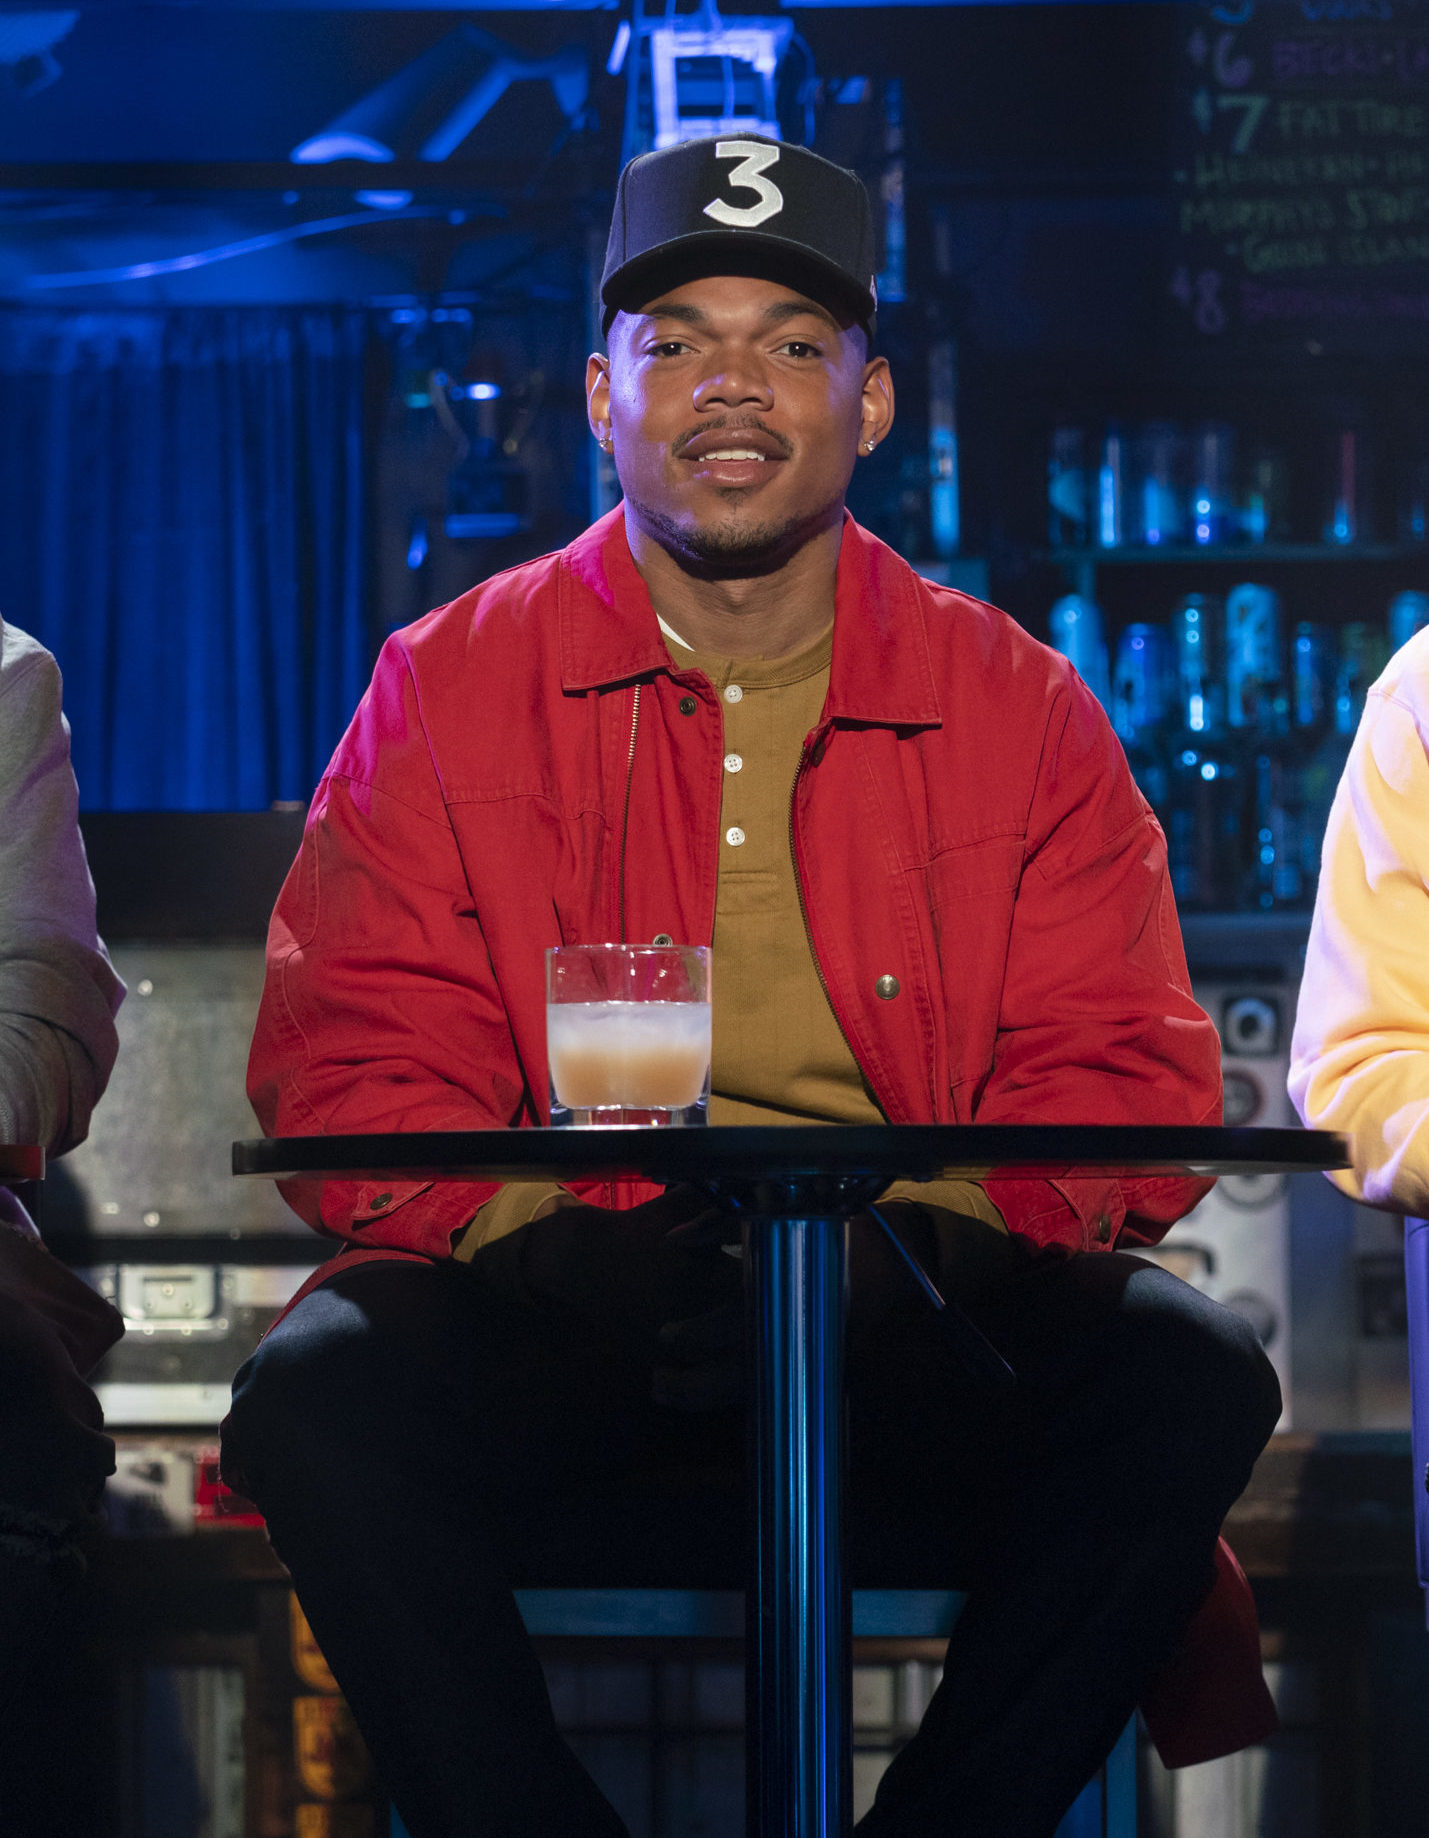 Chance the Rapper – $500,000